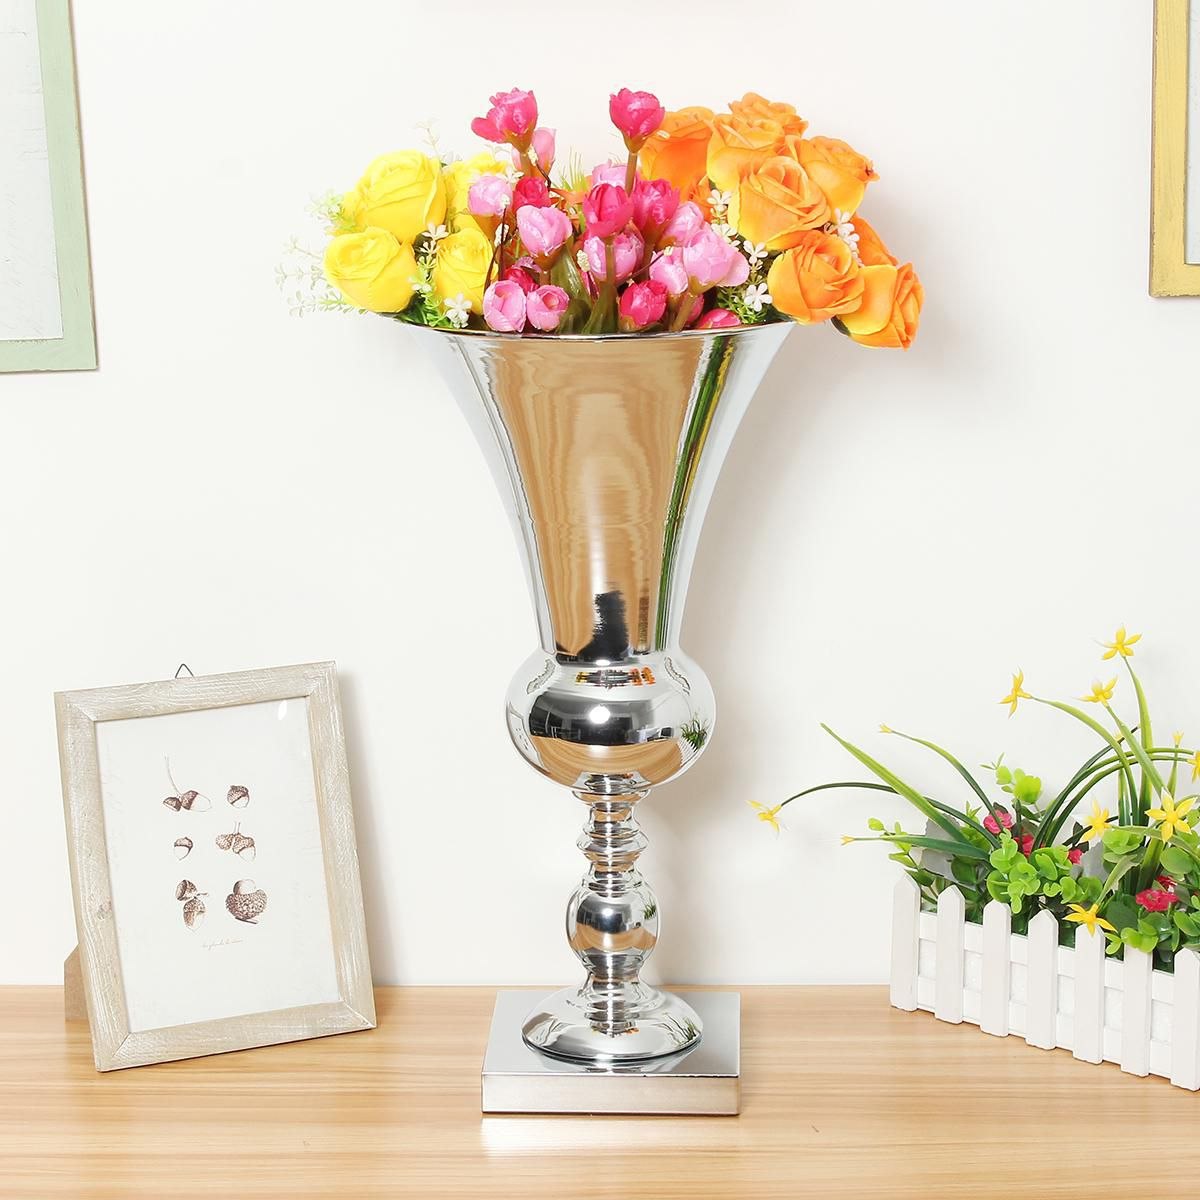 50cm Silver Plate Vase Large Flower Arrangement Urn Wedding Banquet Party Home Buy 50cm Silver Plate Vase Large Flower Arrangement Urn Wedding Banquet Party Home Online At Low Price Snapdeal